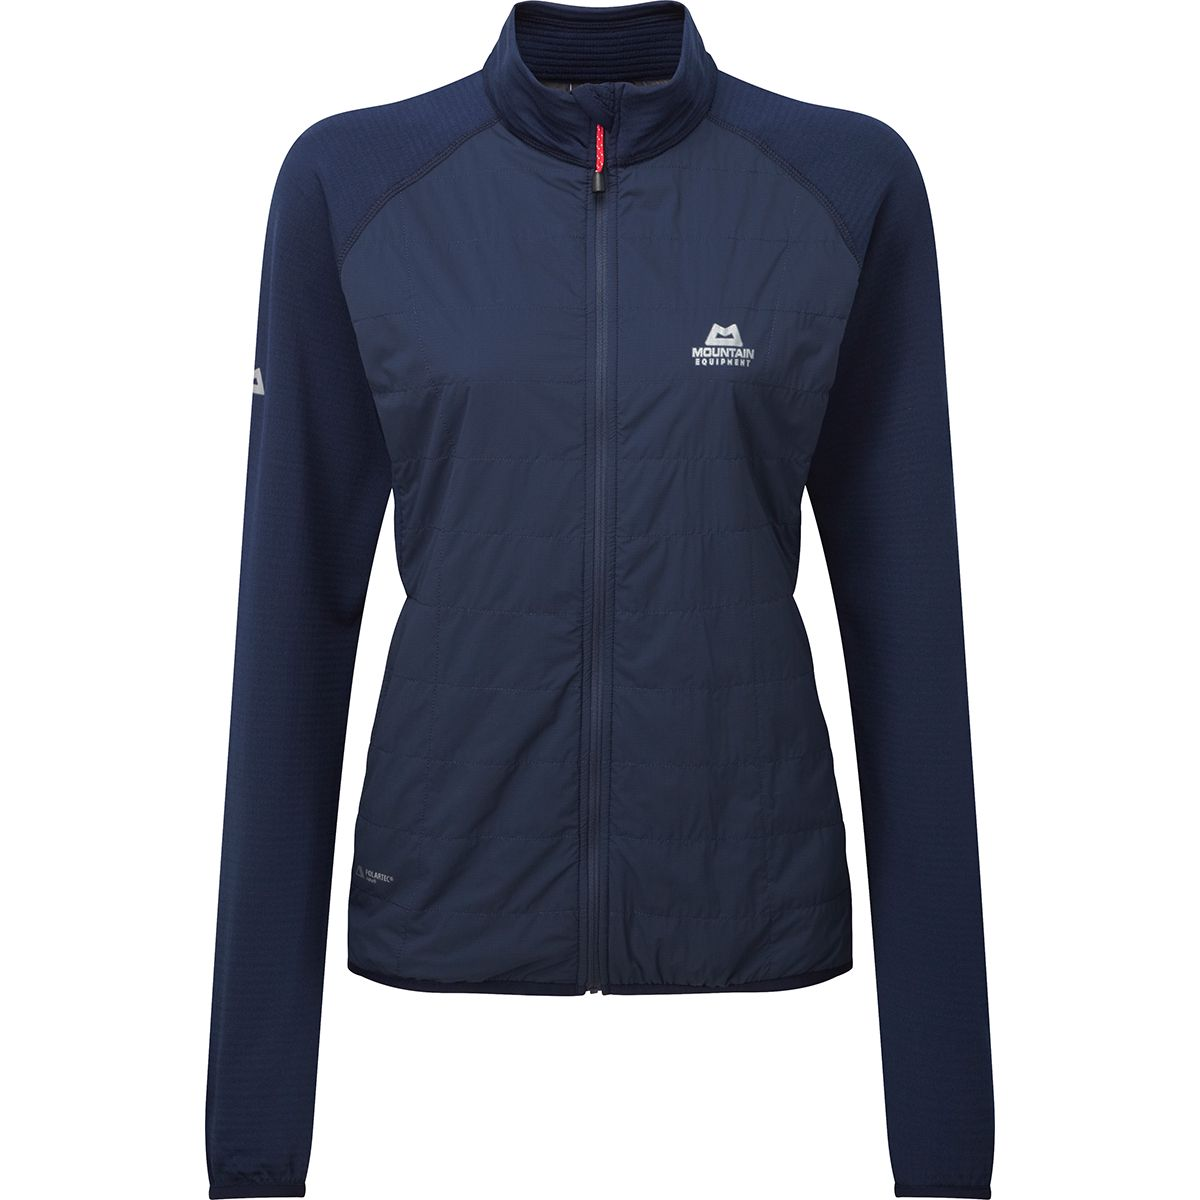 Mountain Equipment Damen Switch Jacke (Größe M, Schwarz) | Fleecejacken > Damen